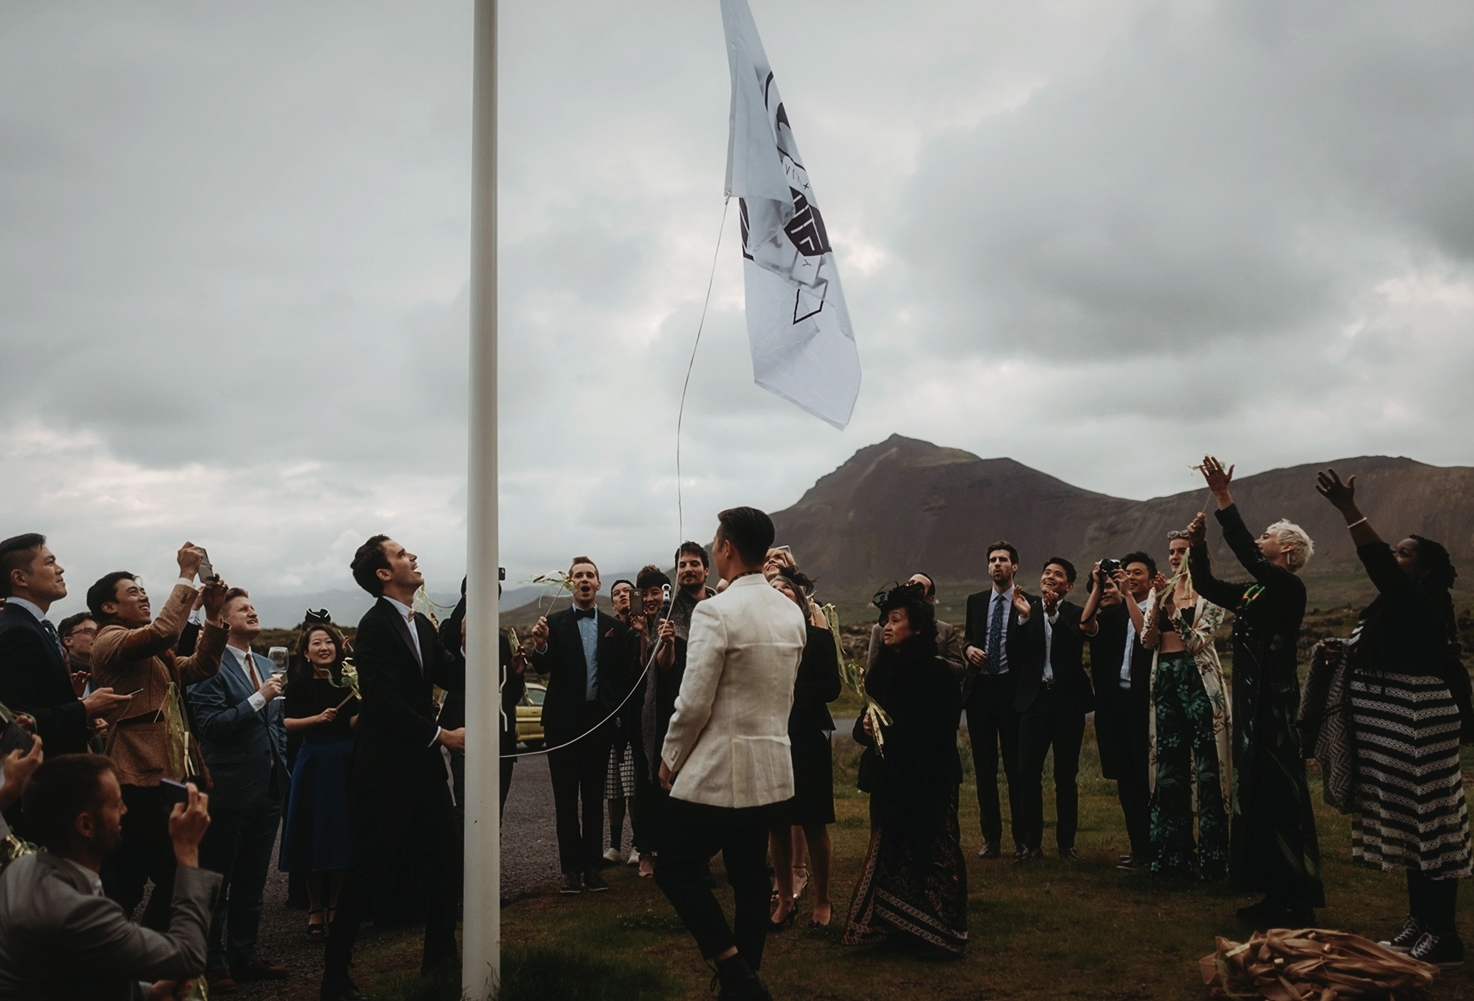 Alternative wedding  photography iceland _ rafal bojar 068.jpg